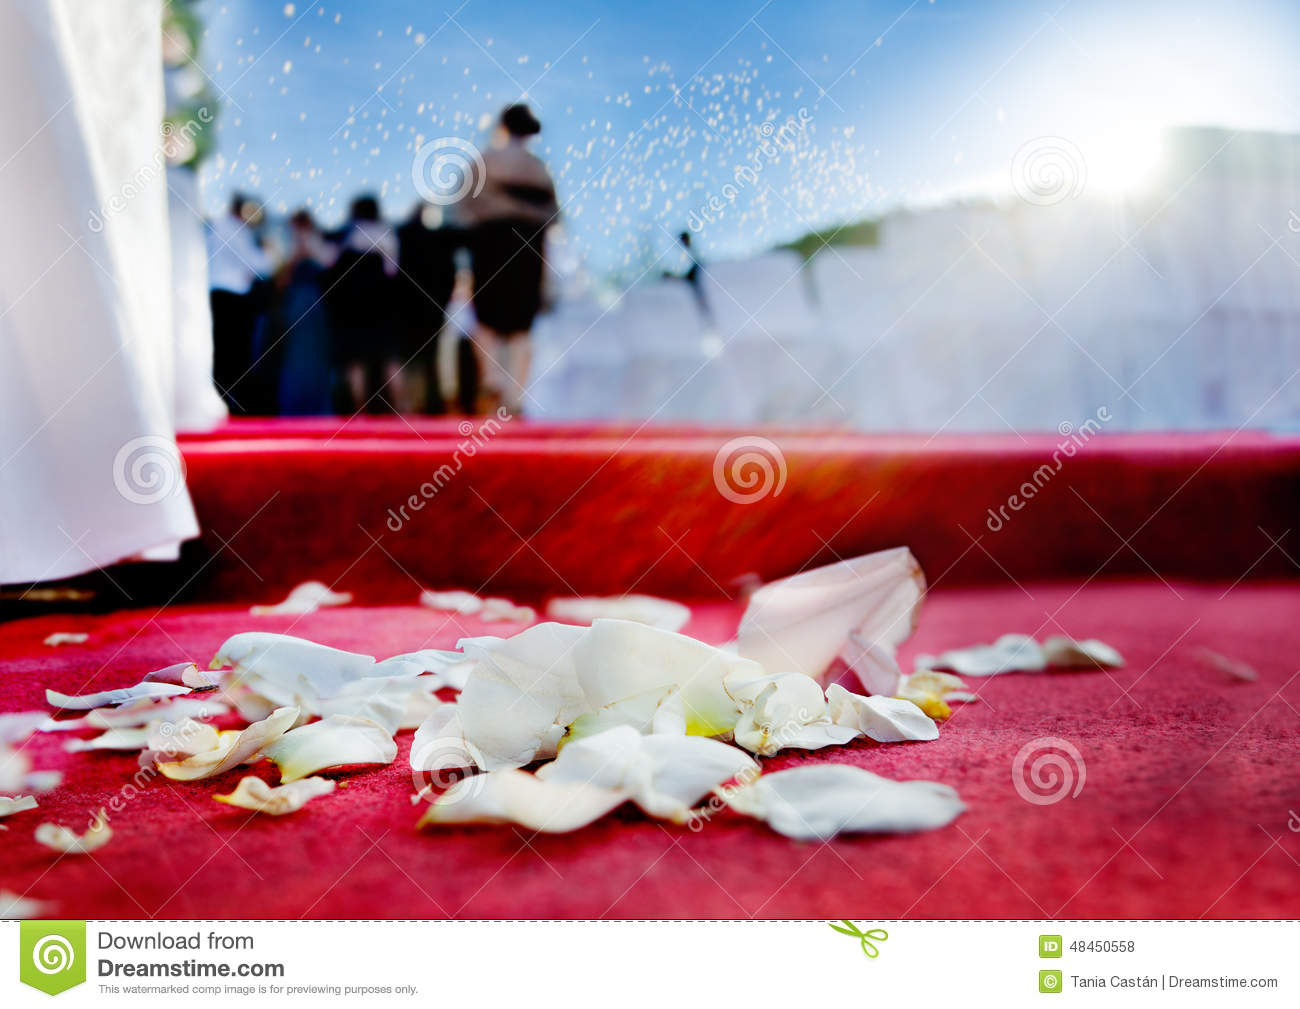 Wedding Petals Of Roses On Red Carpet Stock Photo Image Of Bouquet